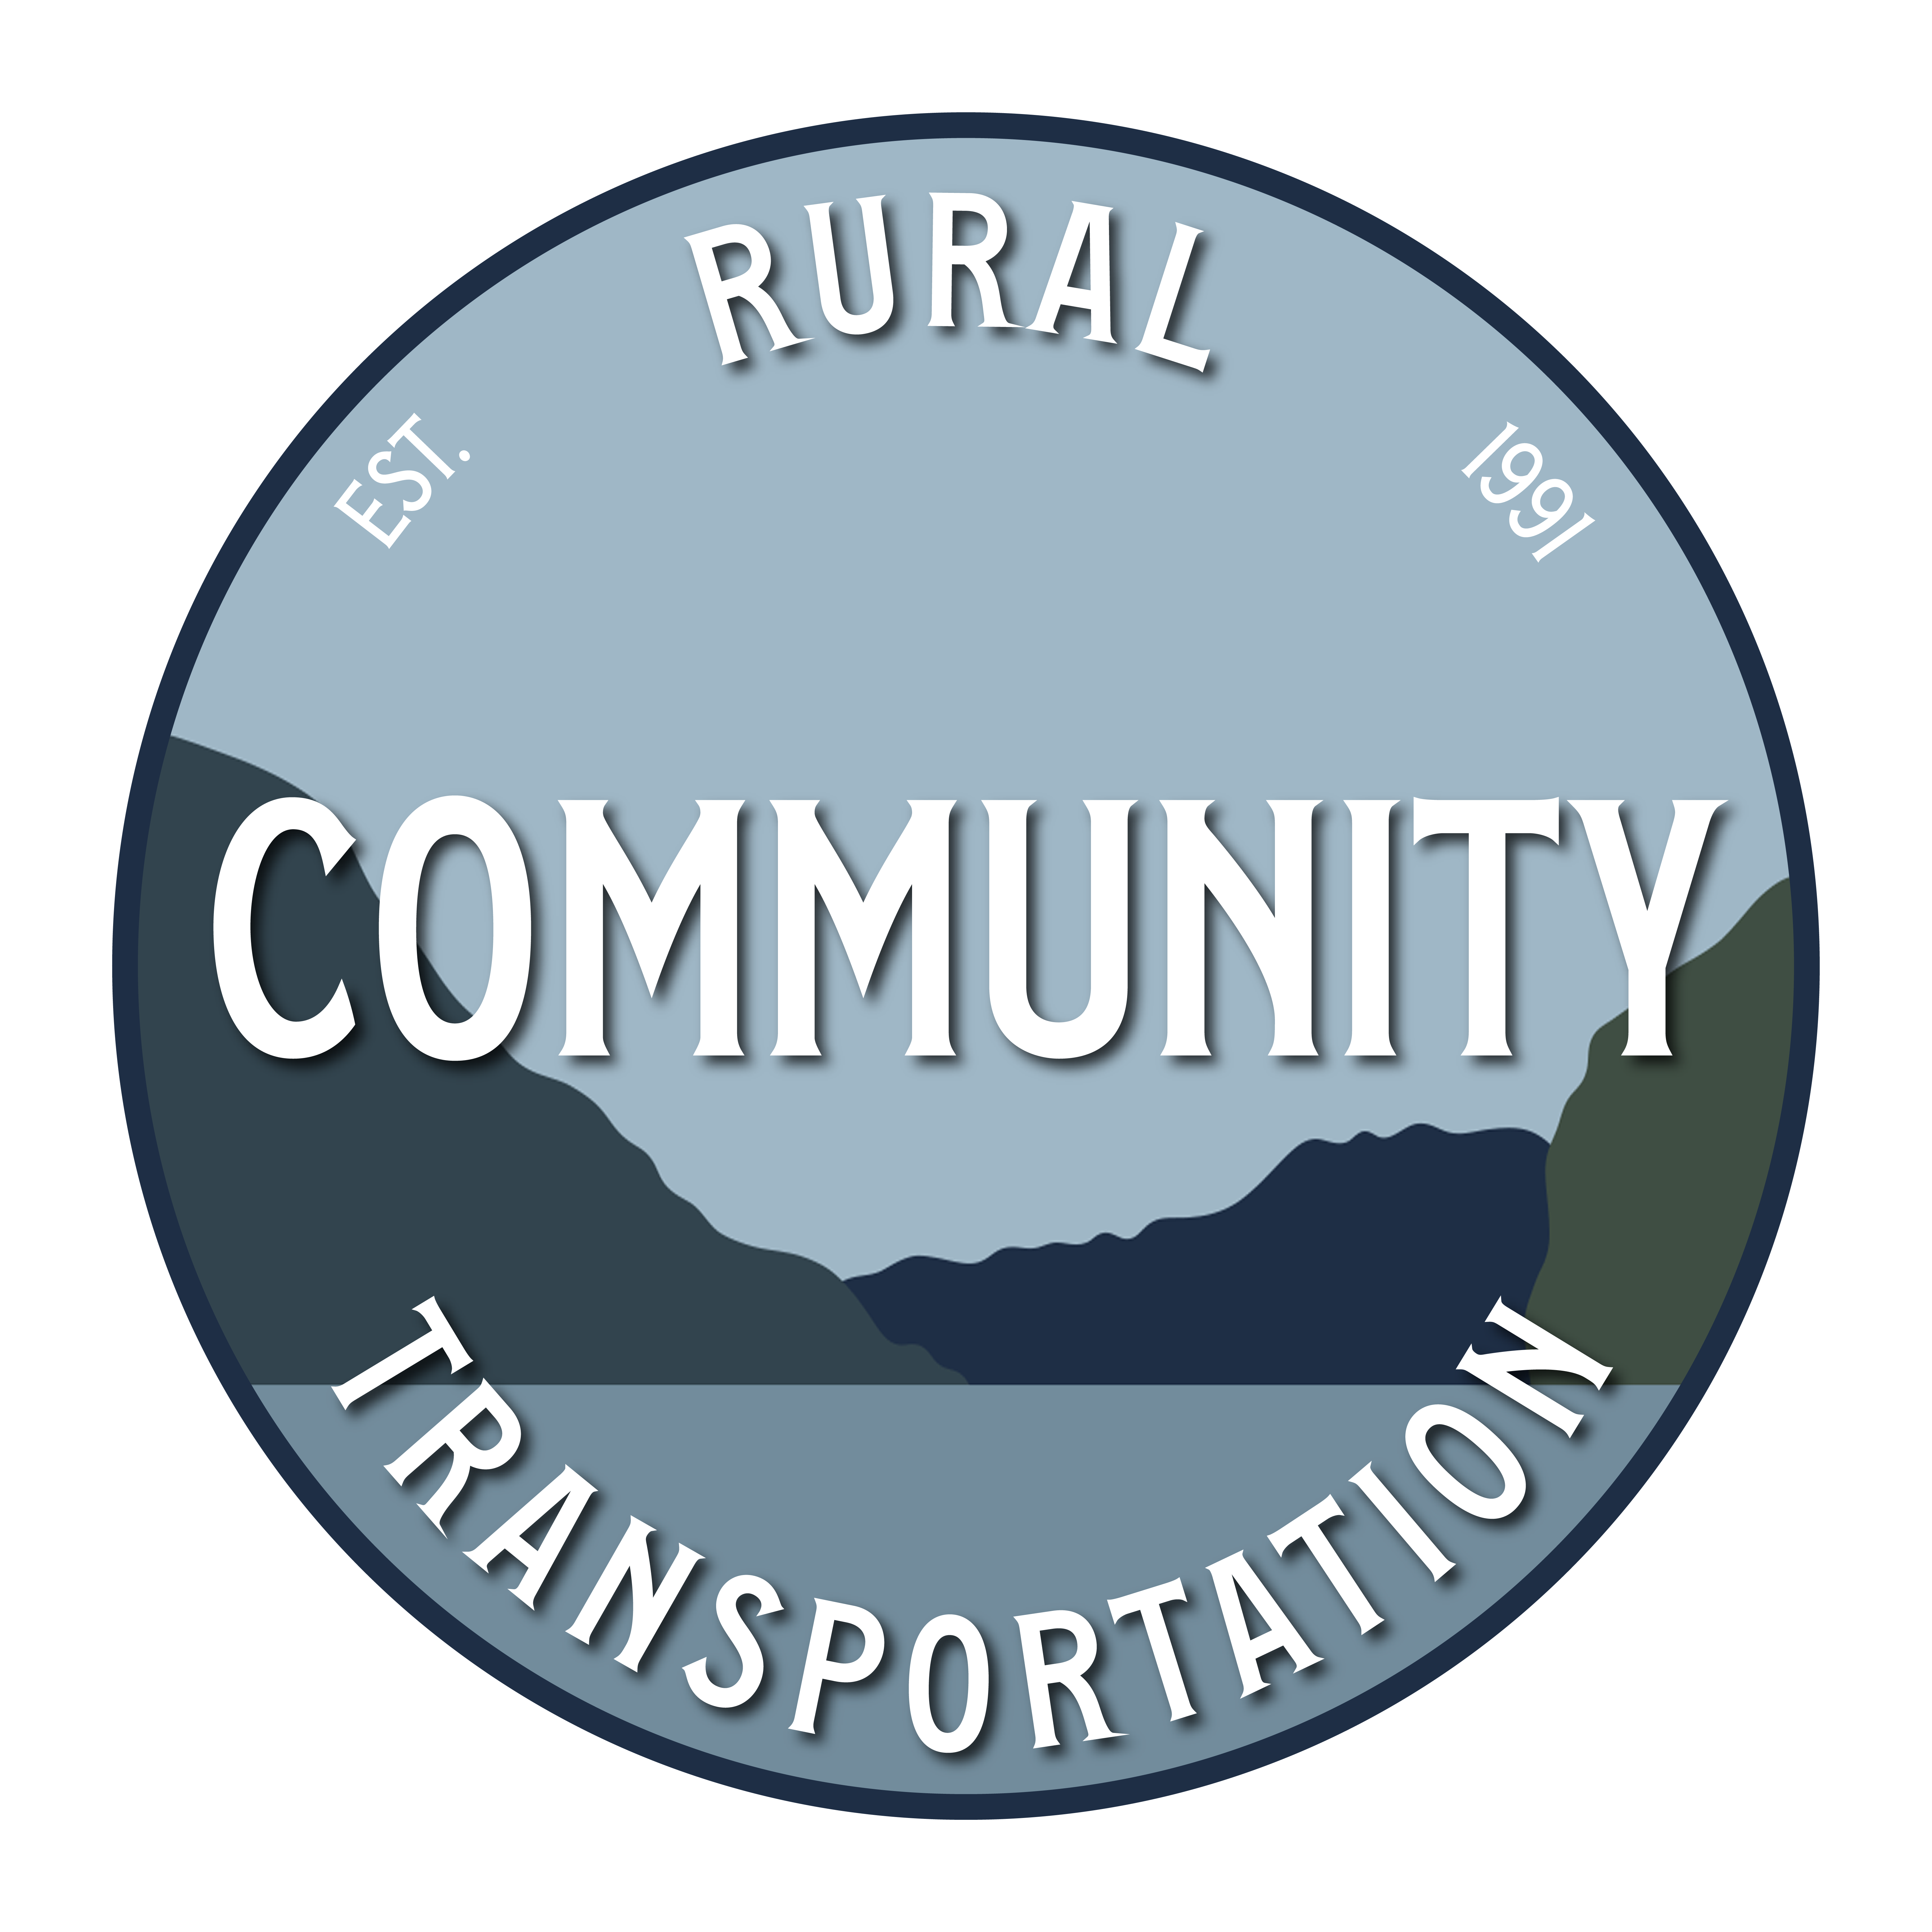 Rural Community Transportation Logo